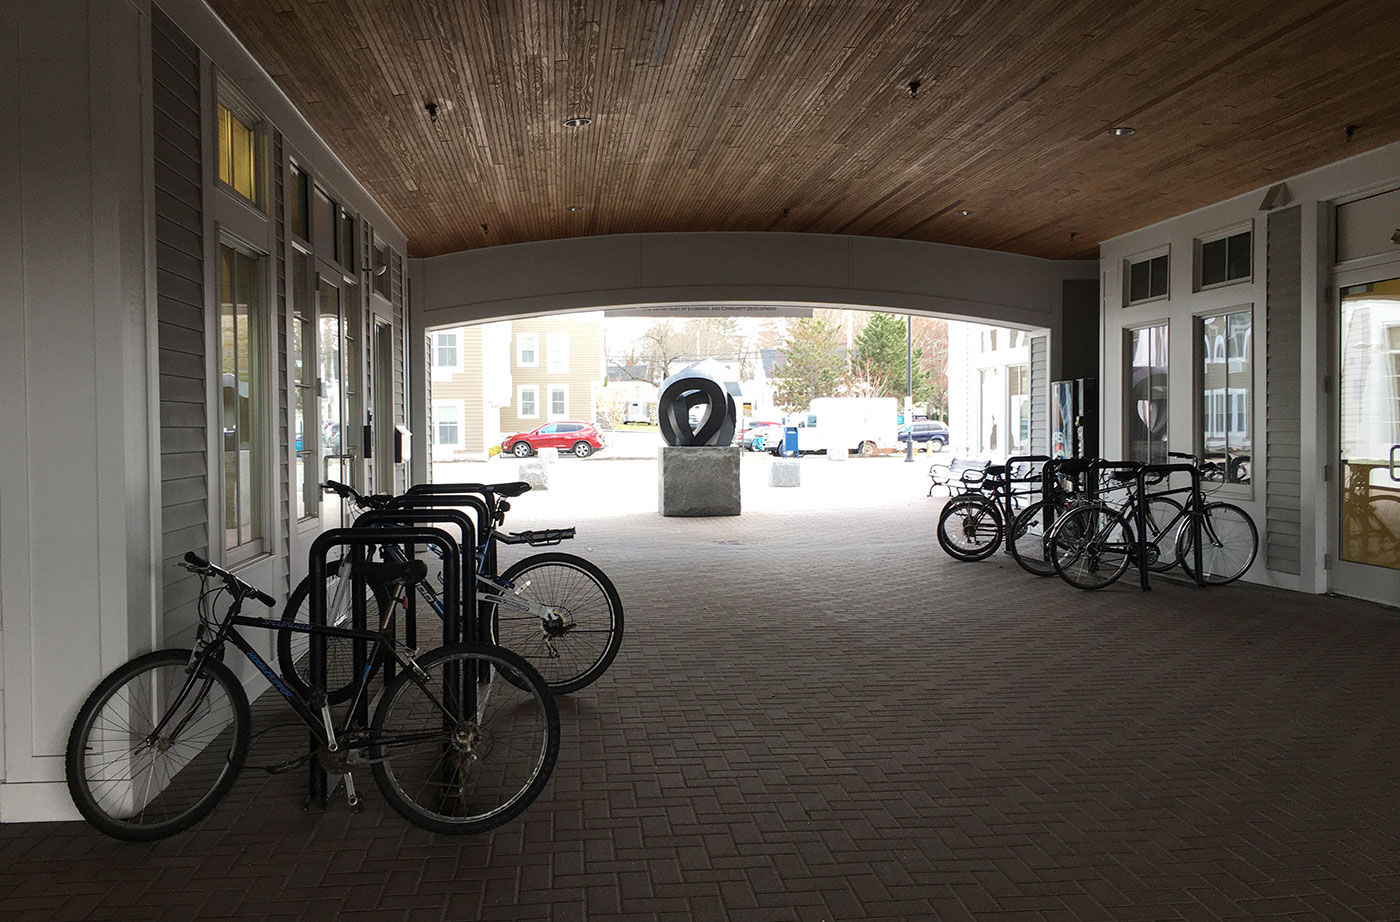 Brunswick bike rack at train and bus station